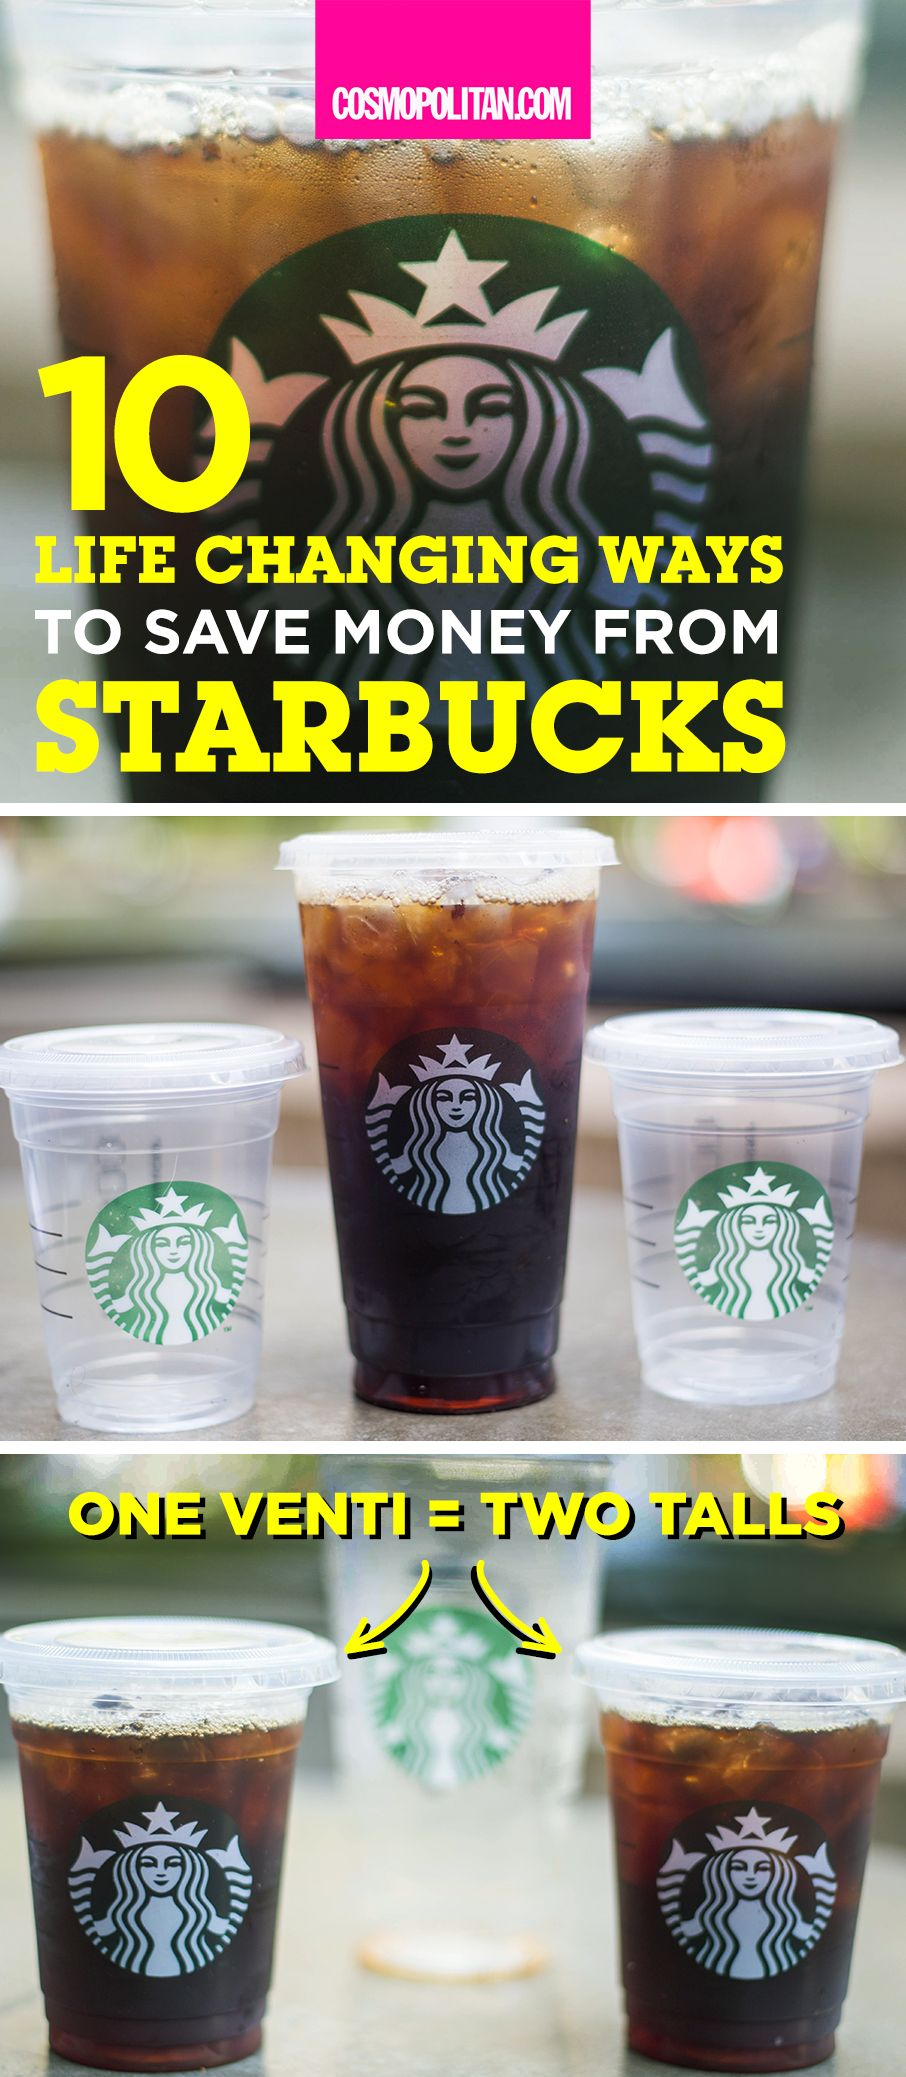 10 Life-Changing Ways to Save Money at Starbucks